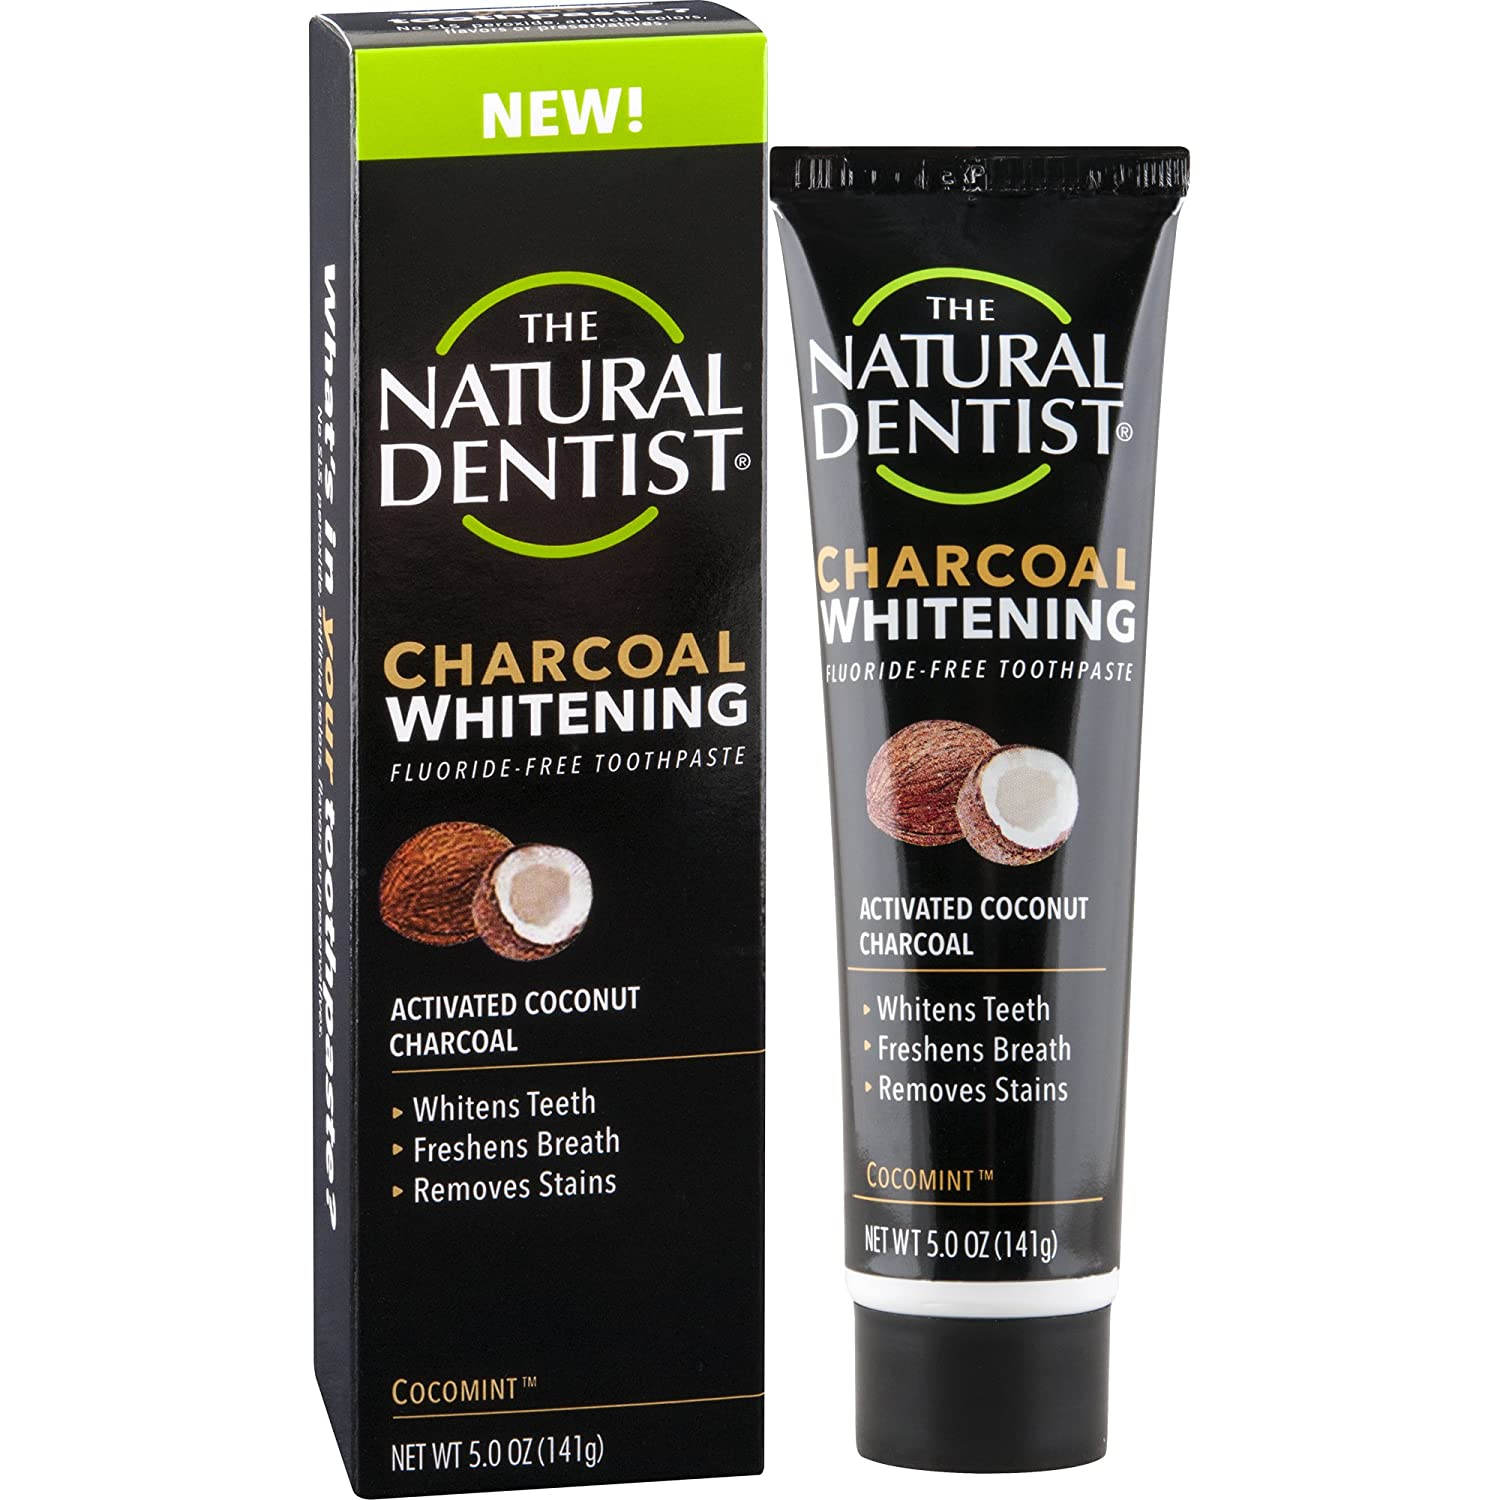 The Natural Dentist Charcoal Fluoride-Free Toothpaste travel product recommended by Kelly Kaplan on Pretty Progressive.